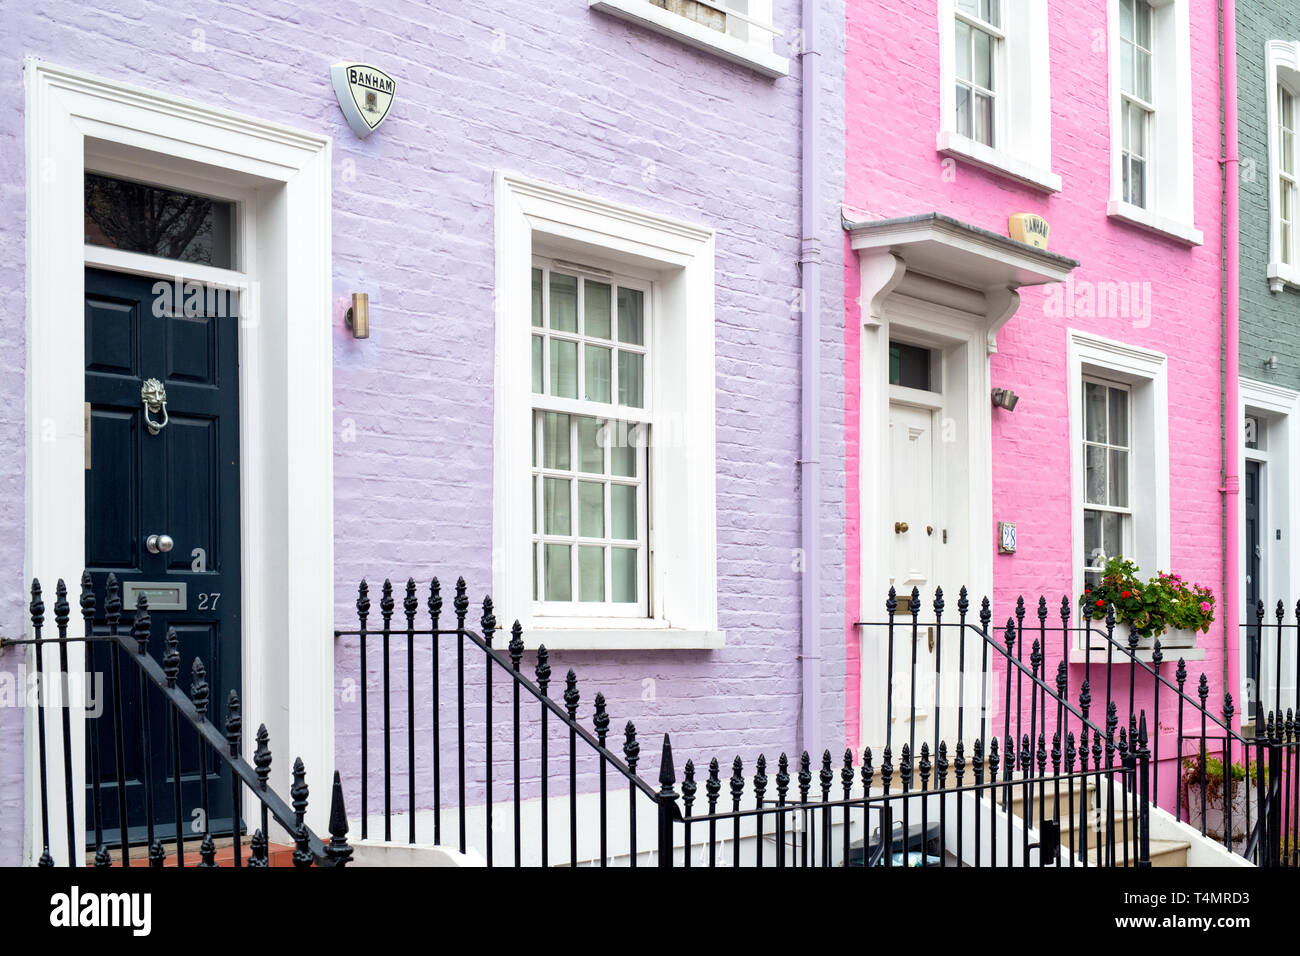 Colourful terraced houses, Bywater Street, Chelsea, Royal Borough of Kensington and Chelsea, London, England - Stock Image